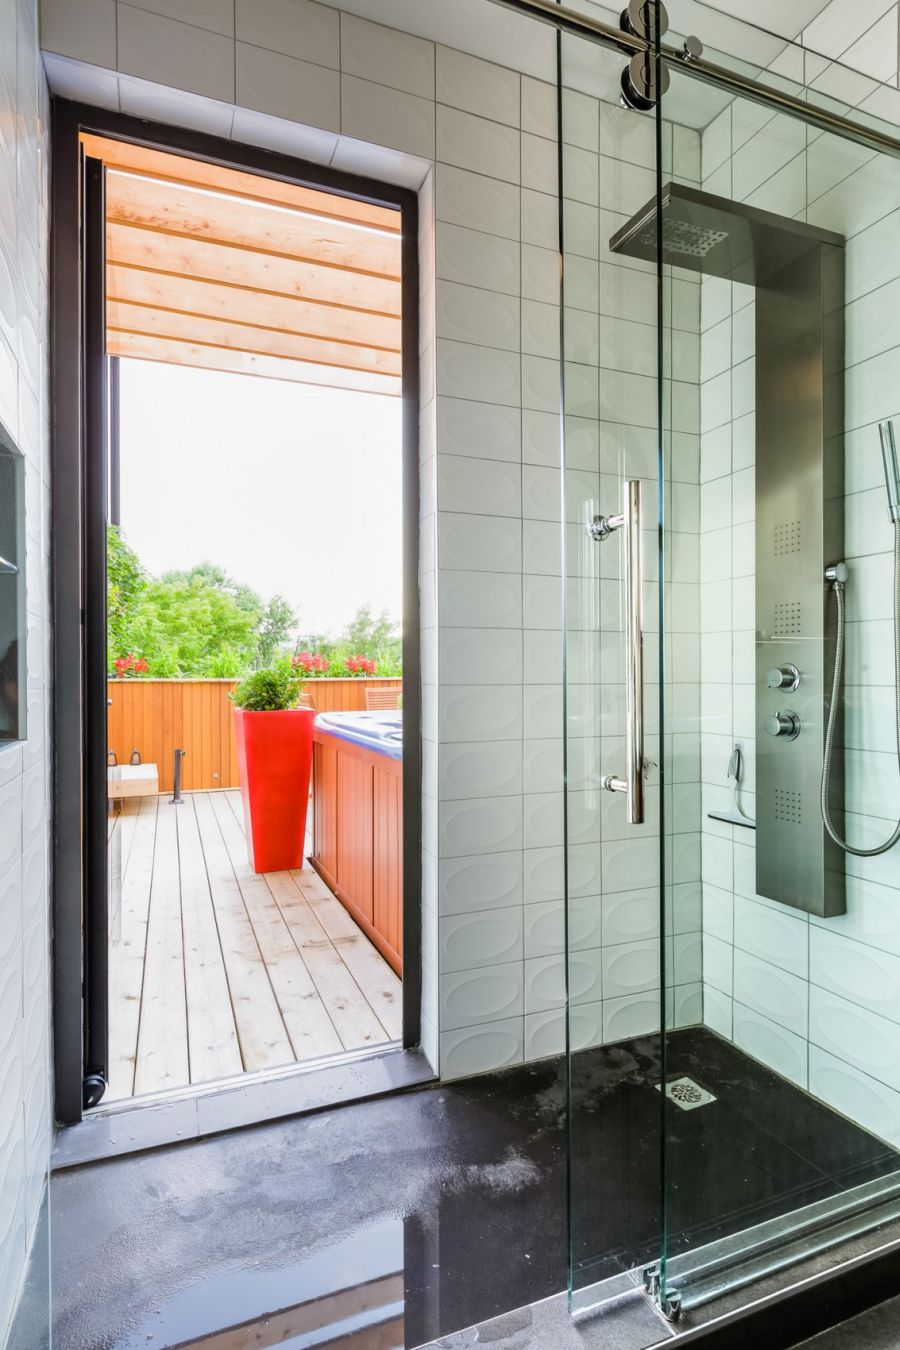 Contemporary bathroom opening up into the terrace with Jacuzzi